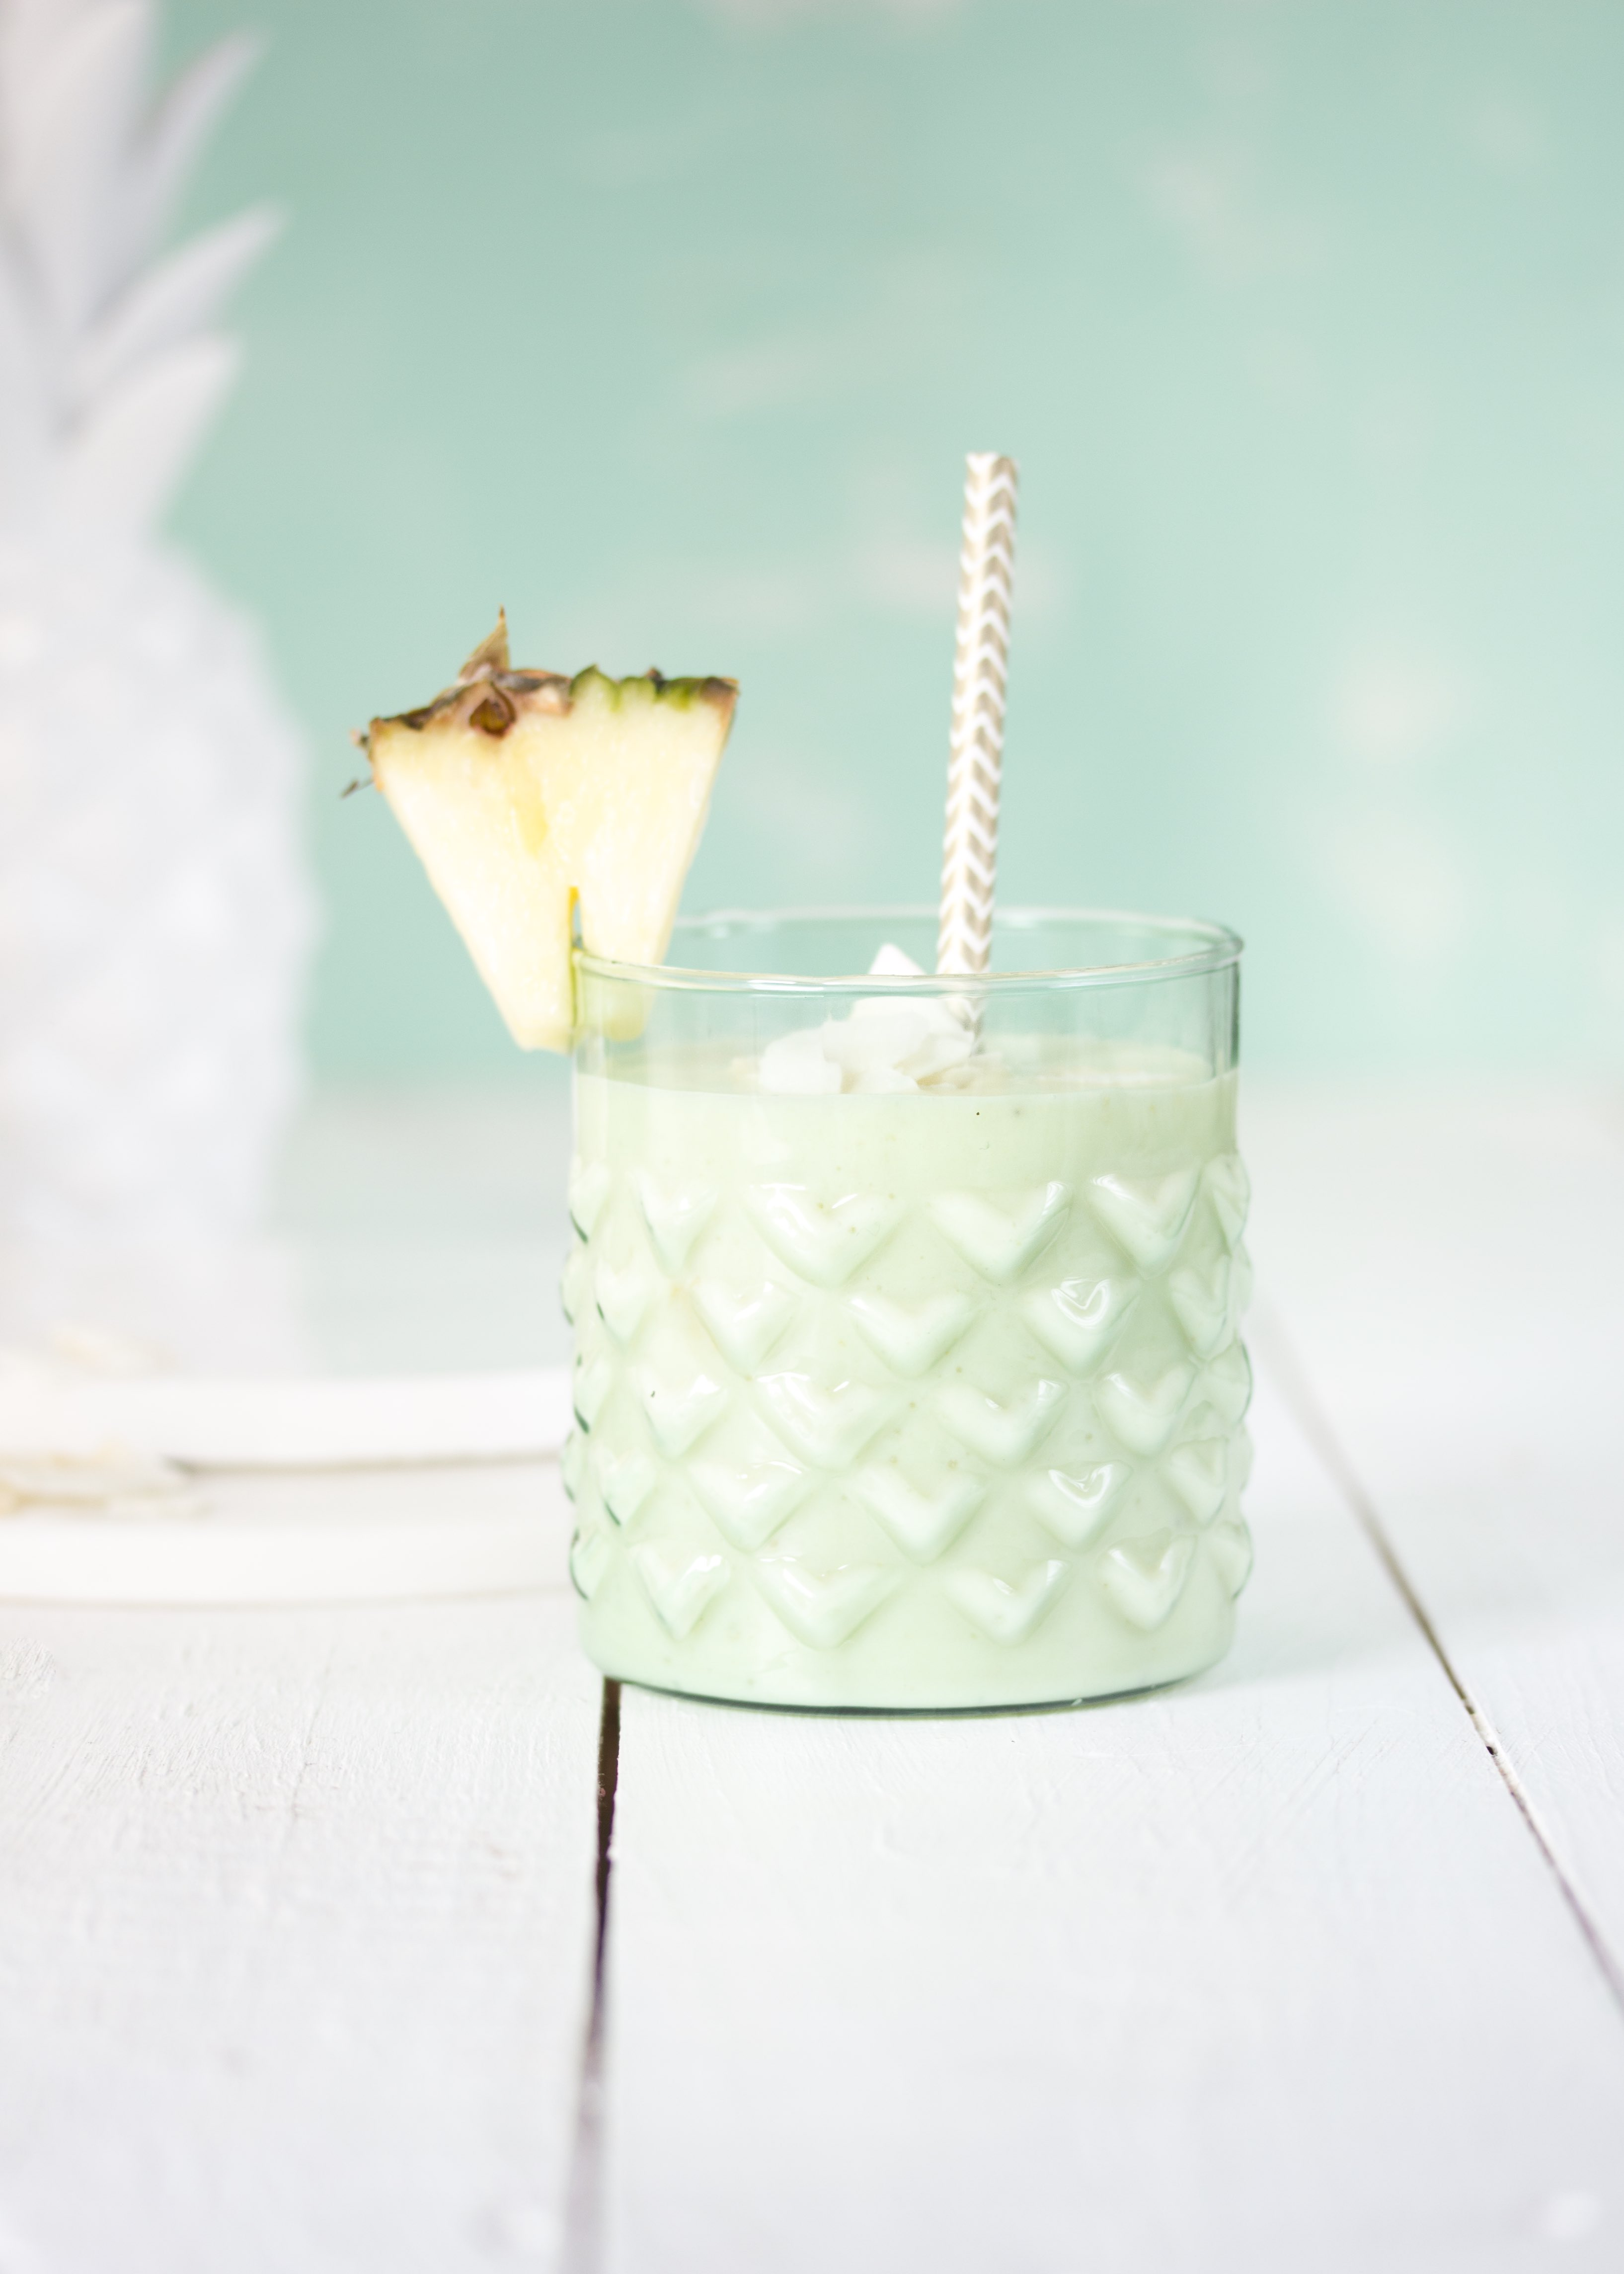 Smoothie Rezept: Ananas Kokos gesund lecker einfach healthy vegan #smoothie #ananas #pineapple #drink #breakfast #vegan | Emma´s Lieblingsstücke